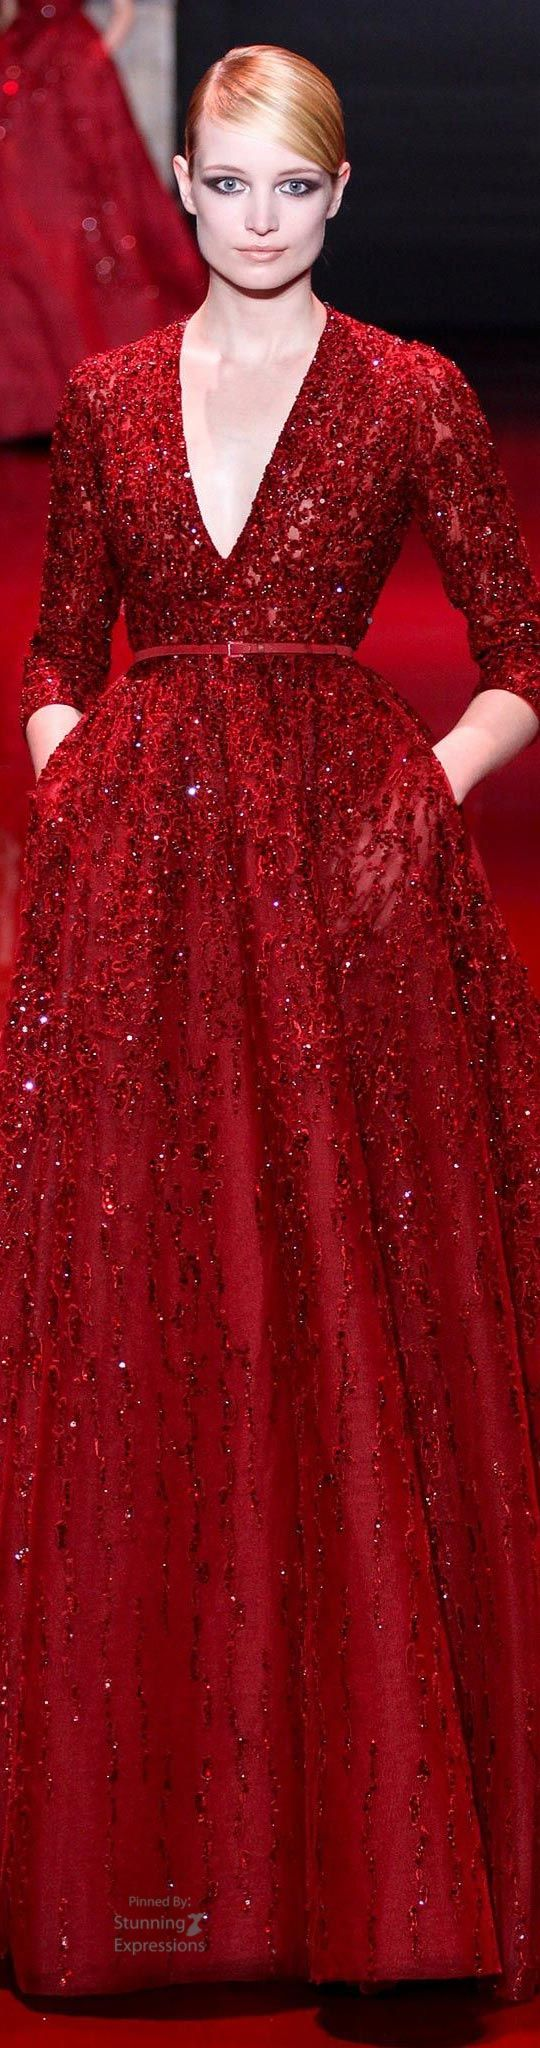 Elie Saab Couture                                                                                                                                                                                 More                                                                                                                                                                                 More